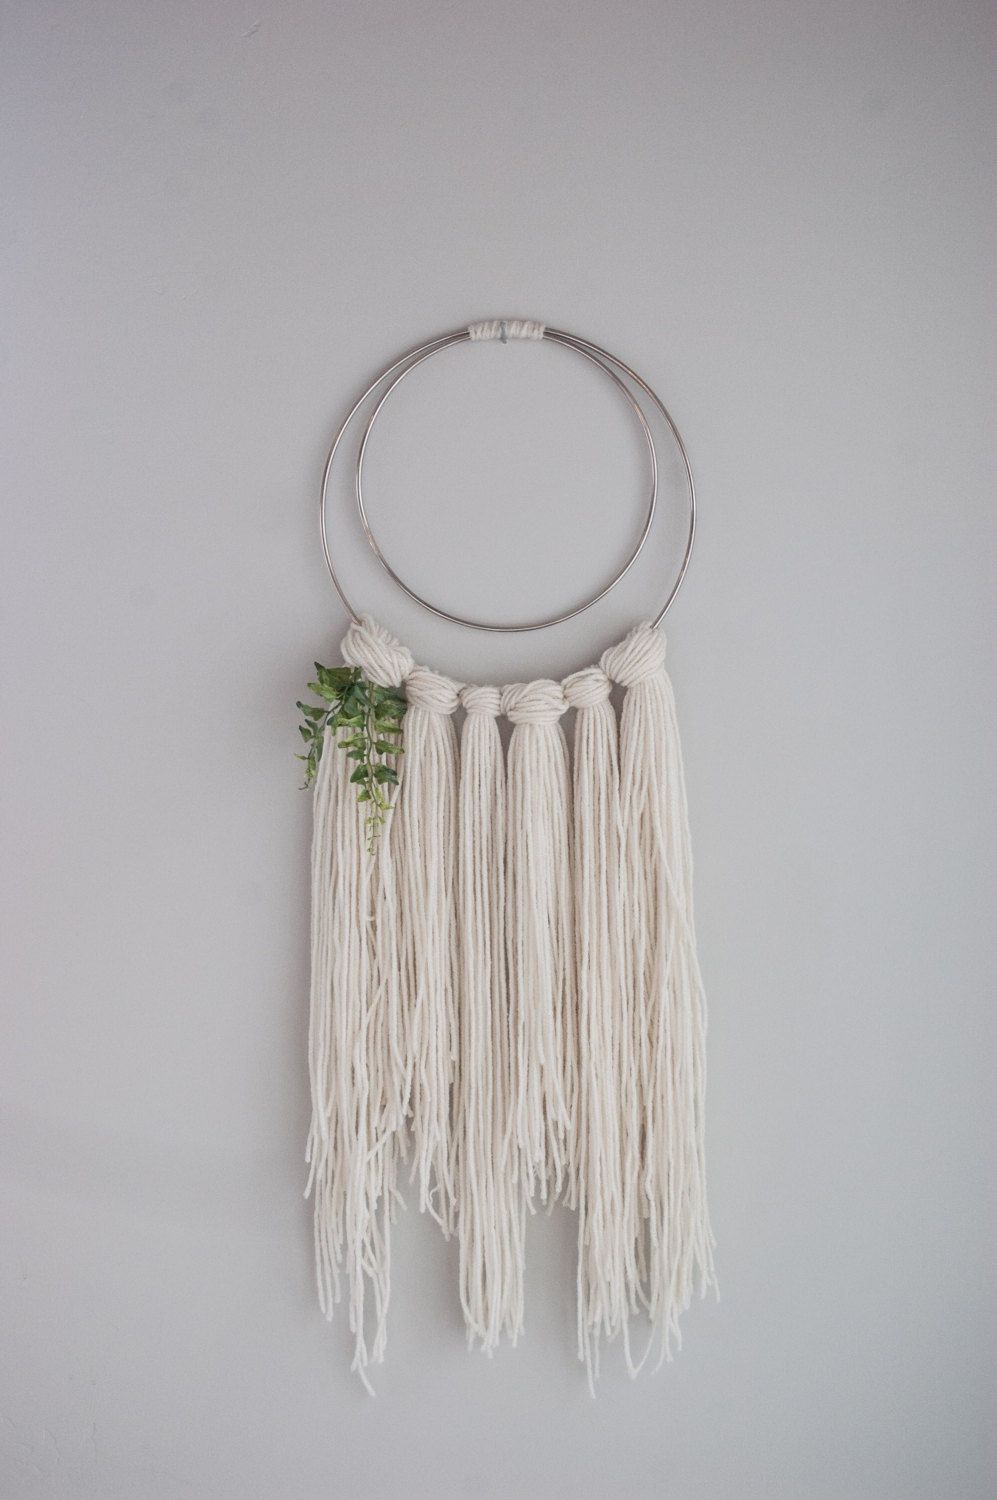 Yarn Wall Hanging Boho Wall Art Metal Ring Wall Hanging Intended For Rings Wall Decor (Photo 9 of 30)